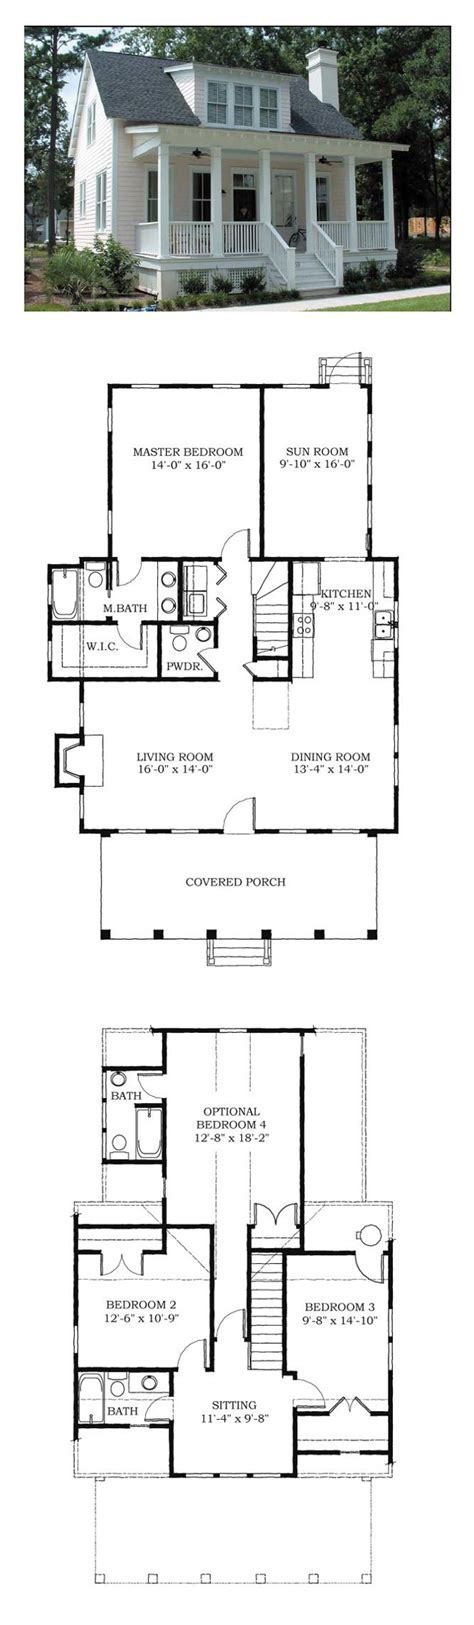 cool house layouts 101 interior design ideas home bunch interior design ideas